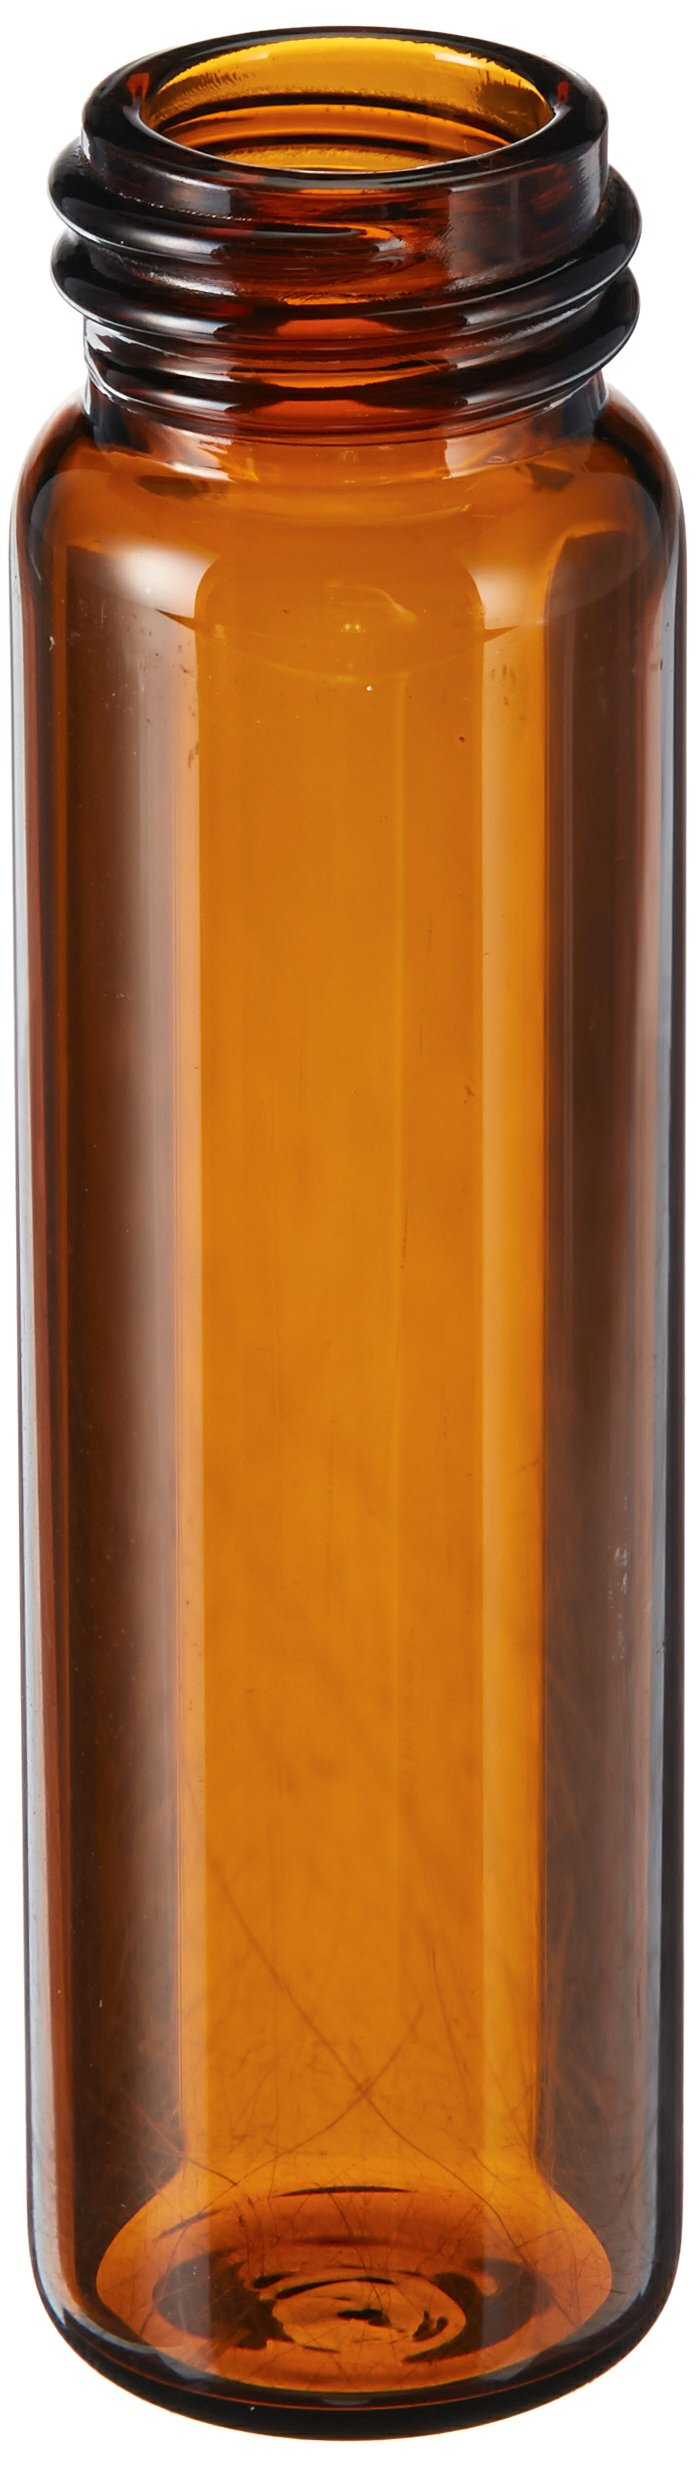 National Scientific B7999-3A Glass Storage Vial, 22ml Volume, 17mm D x 60mm H, Amber (Pack of 200)